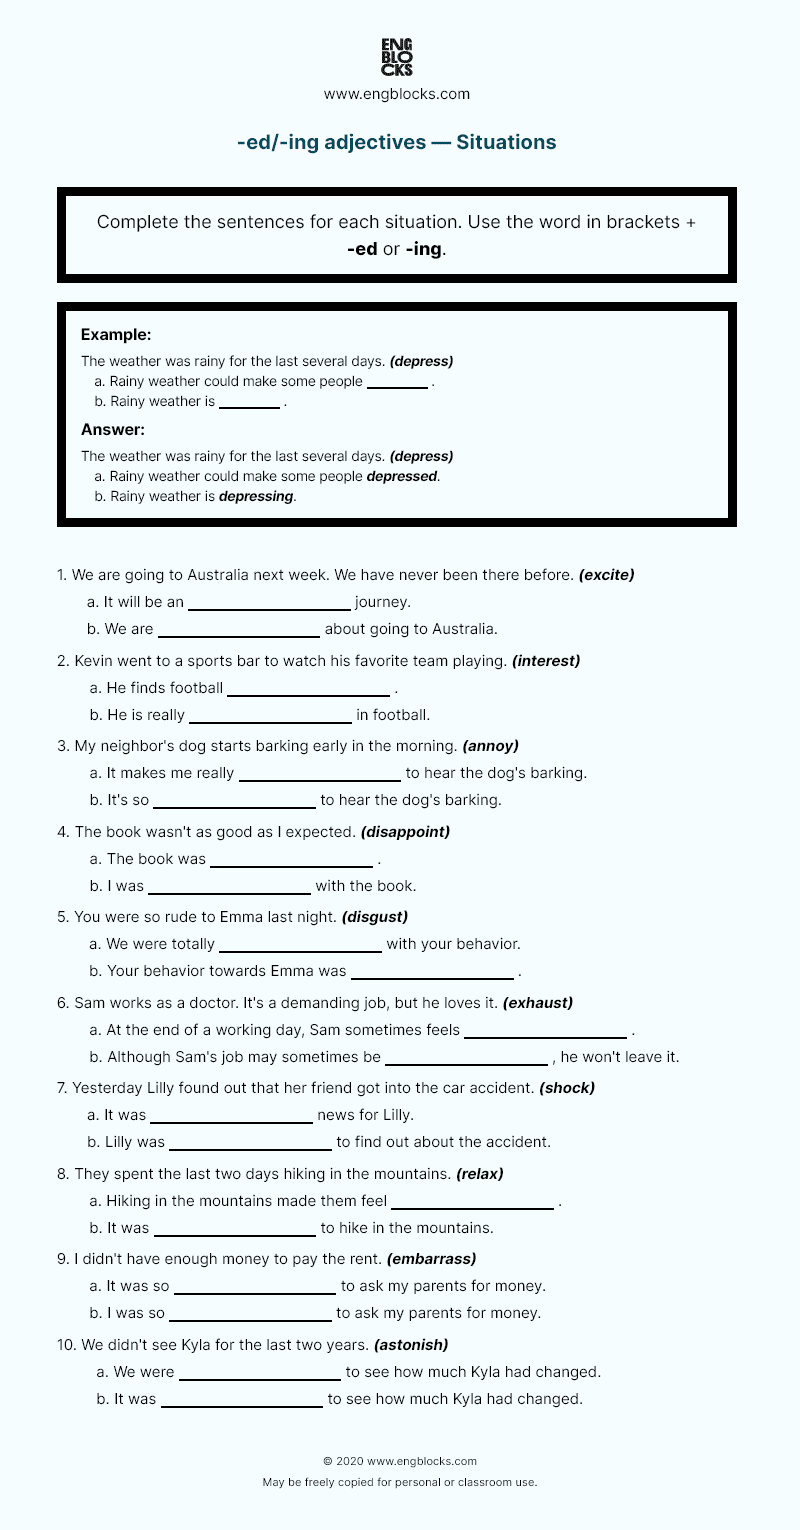 Grammar Worksheet: -ed/-ing adjectives — Situations (in color)